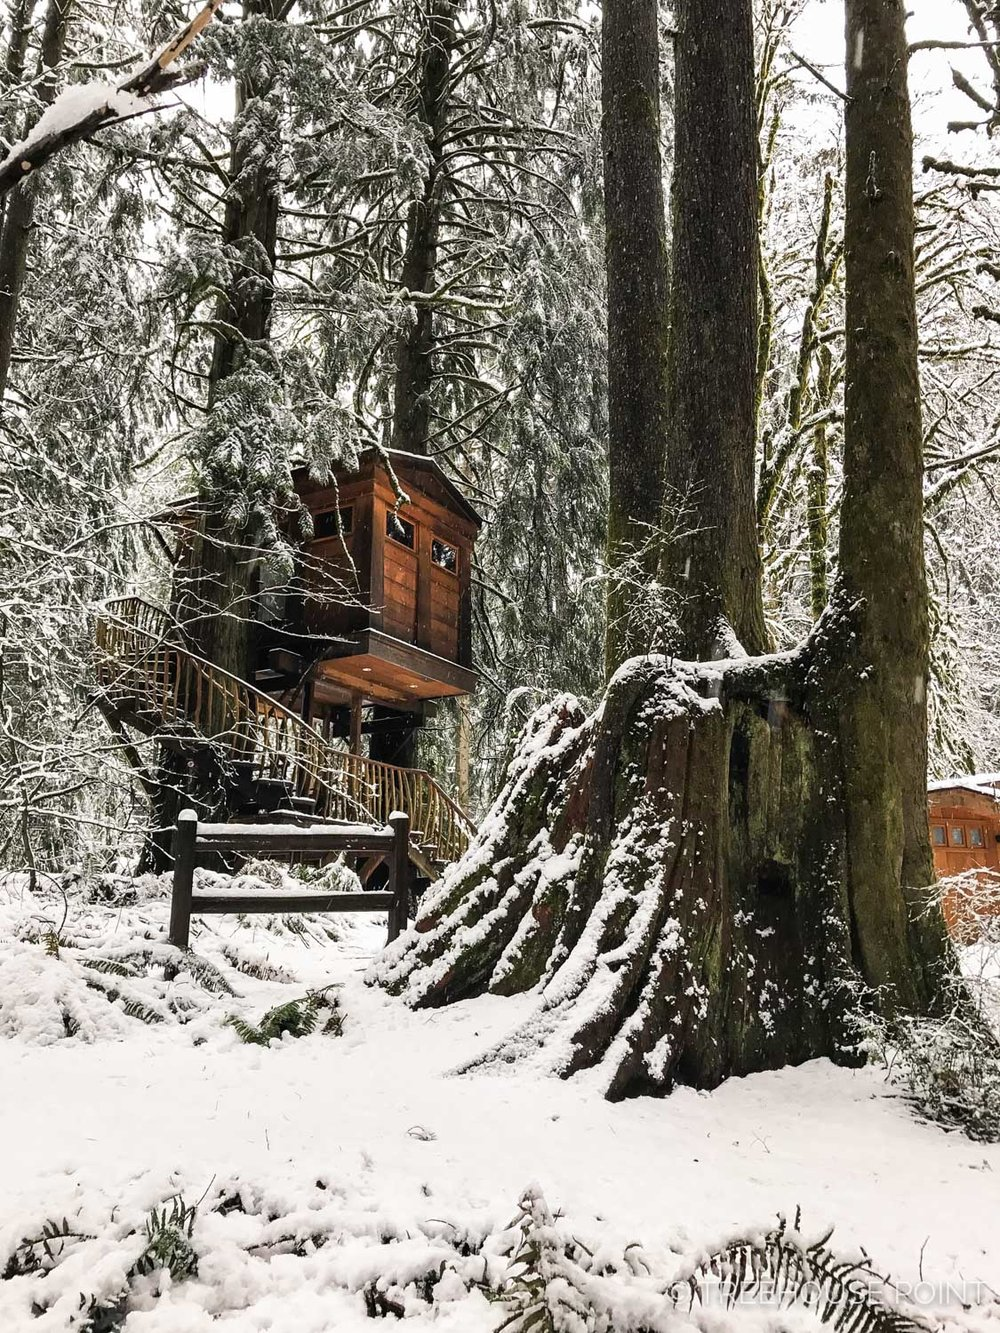 Bonbib Treehouse in the winter